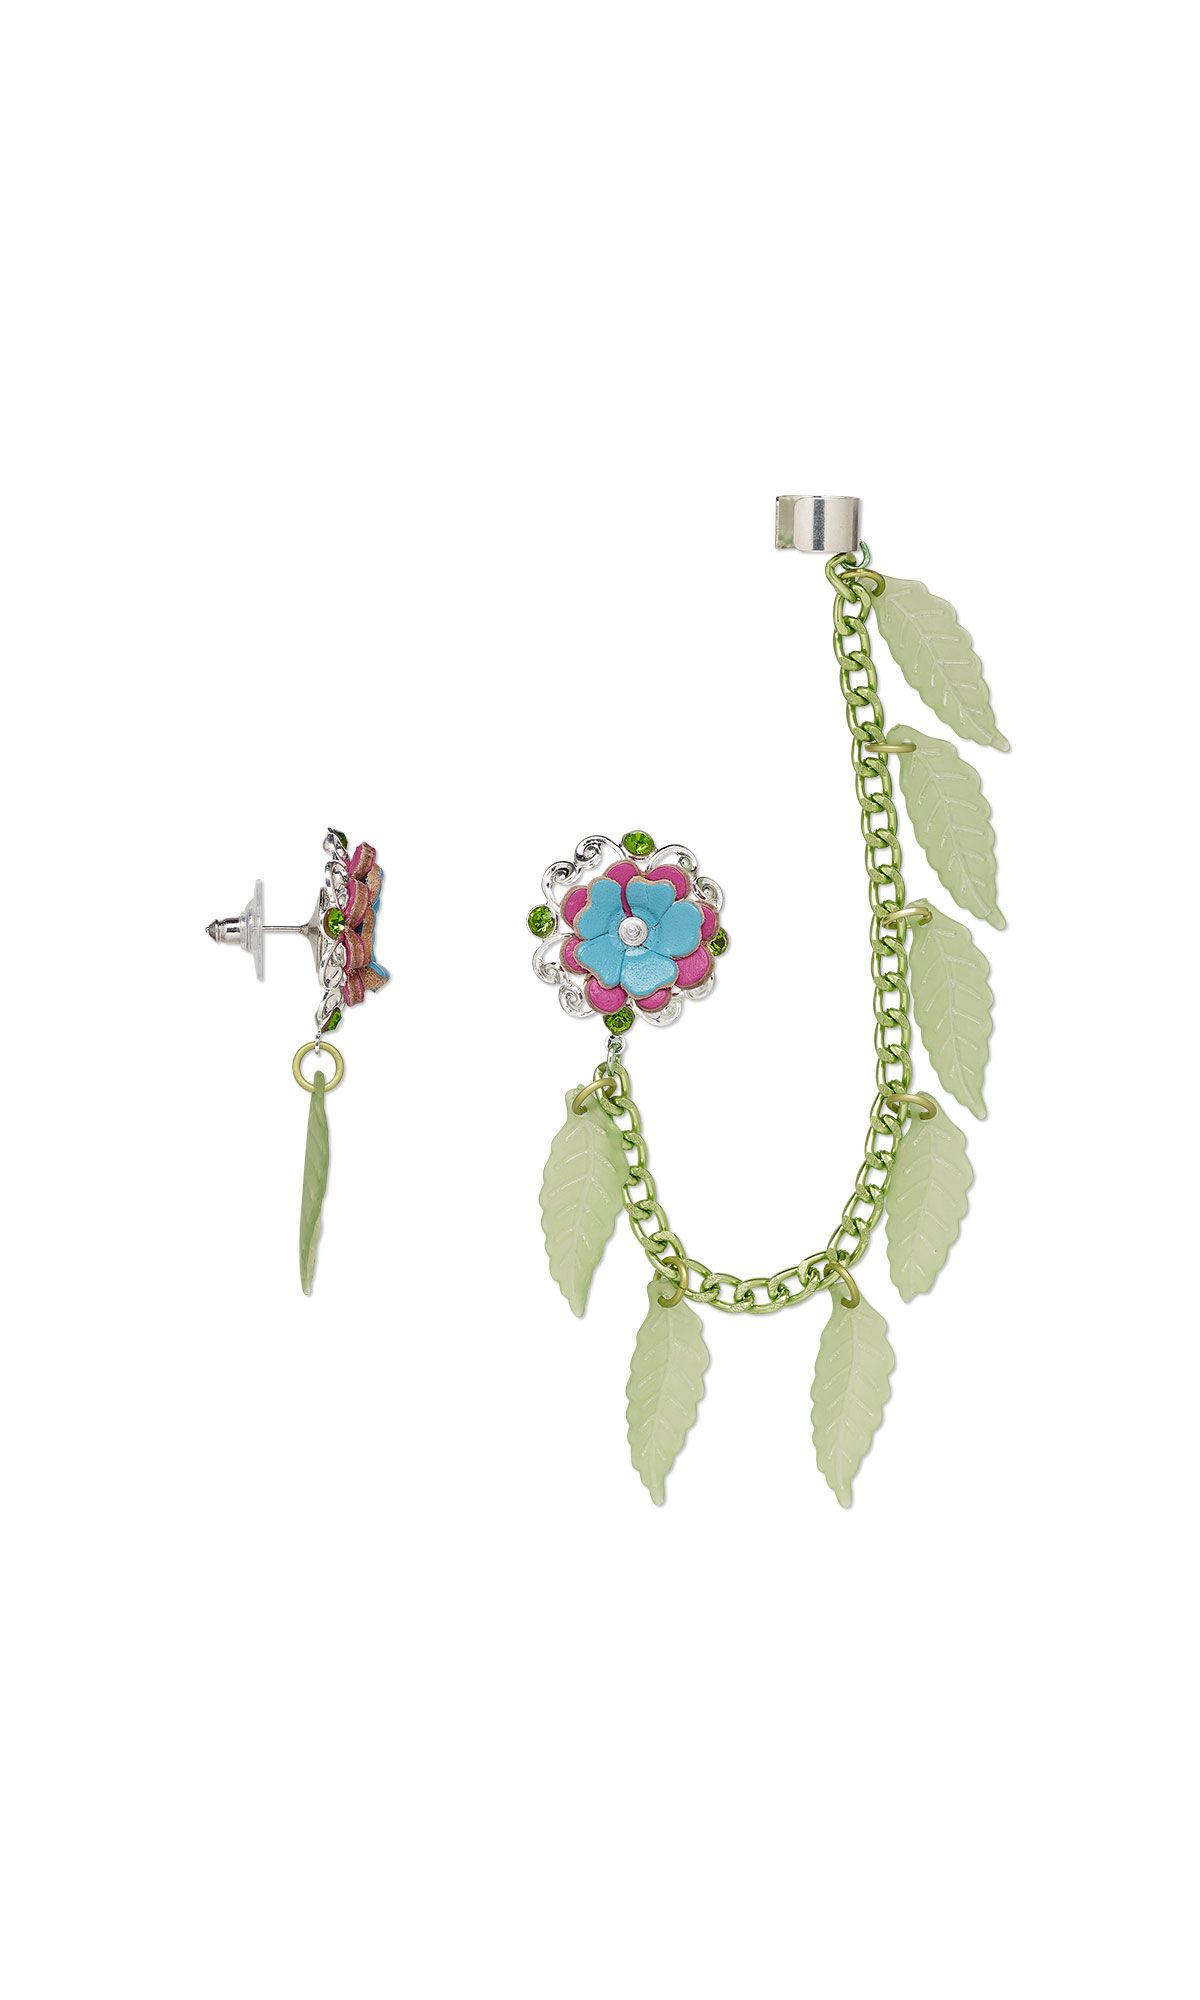 f4bbf77284c Jewelry Design - Ear Cuff and Earring Set with Acrylic Charms, Glass ...